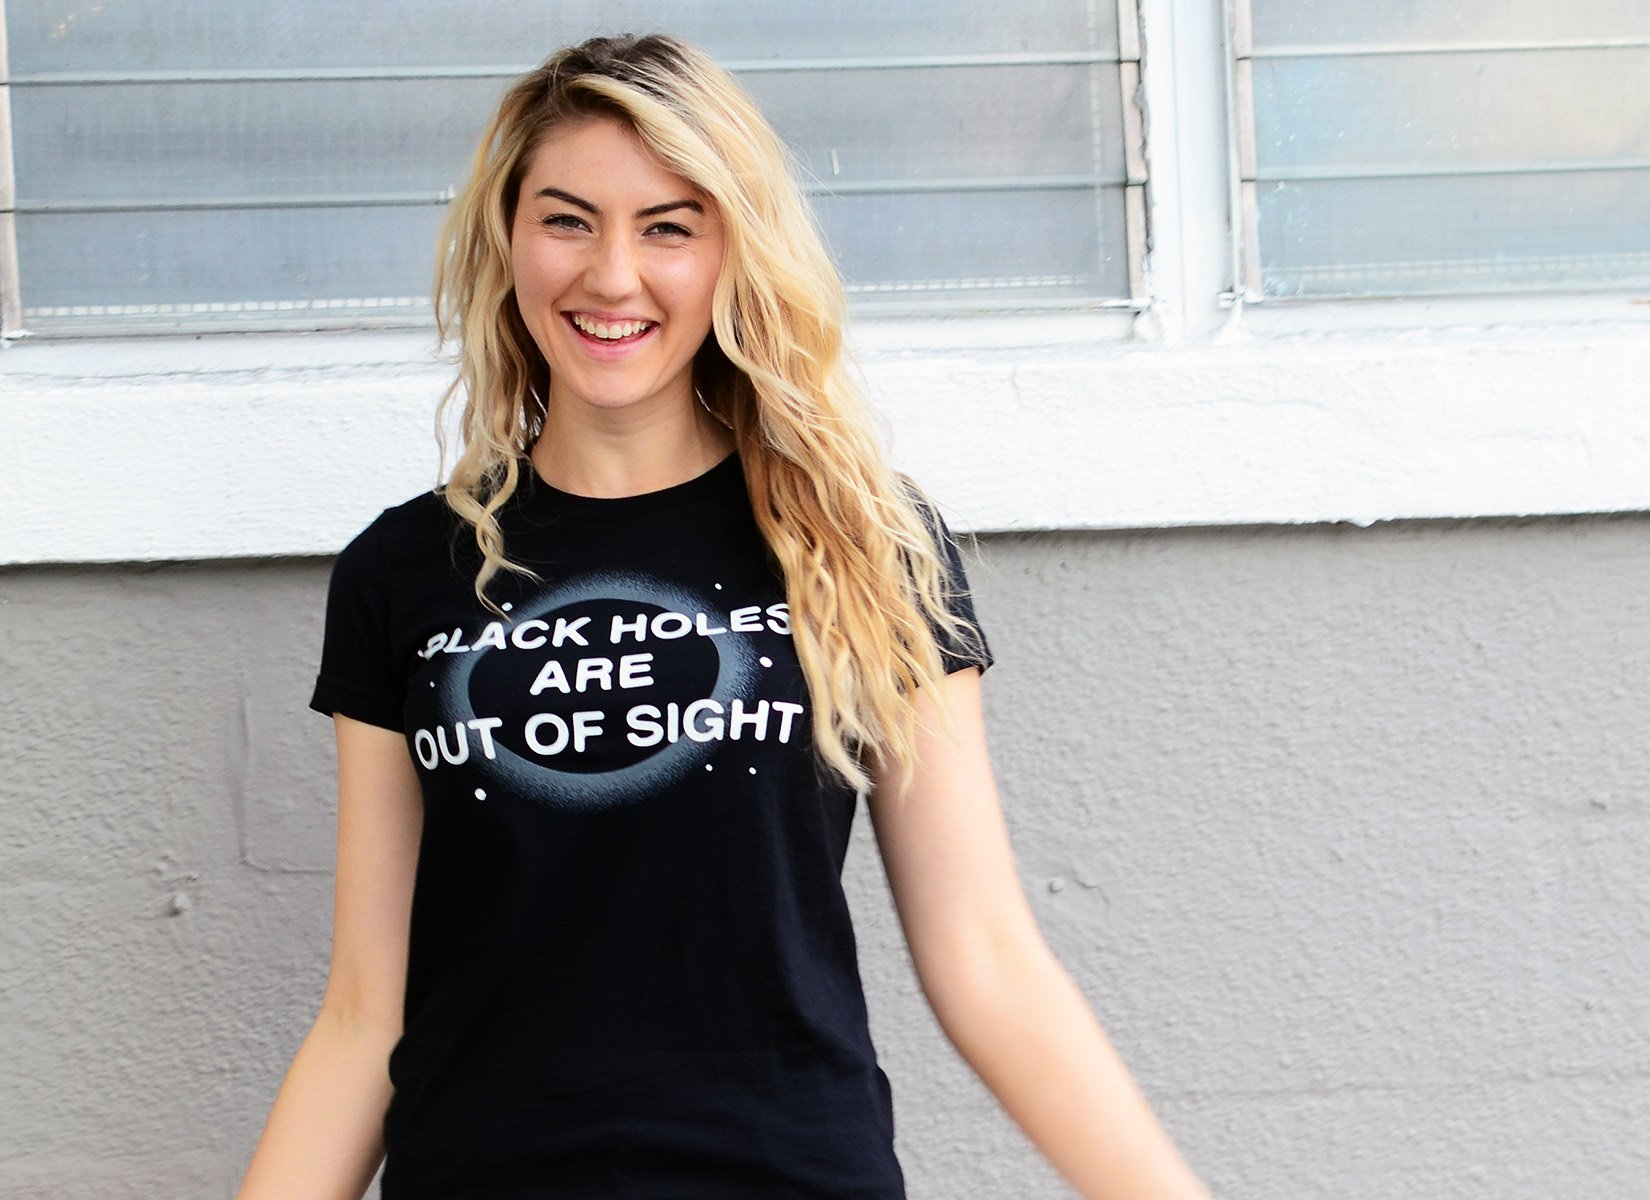 Black Holes Are Out Of Sight on Juniors T-Shirt